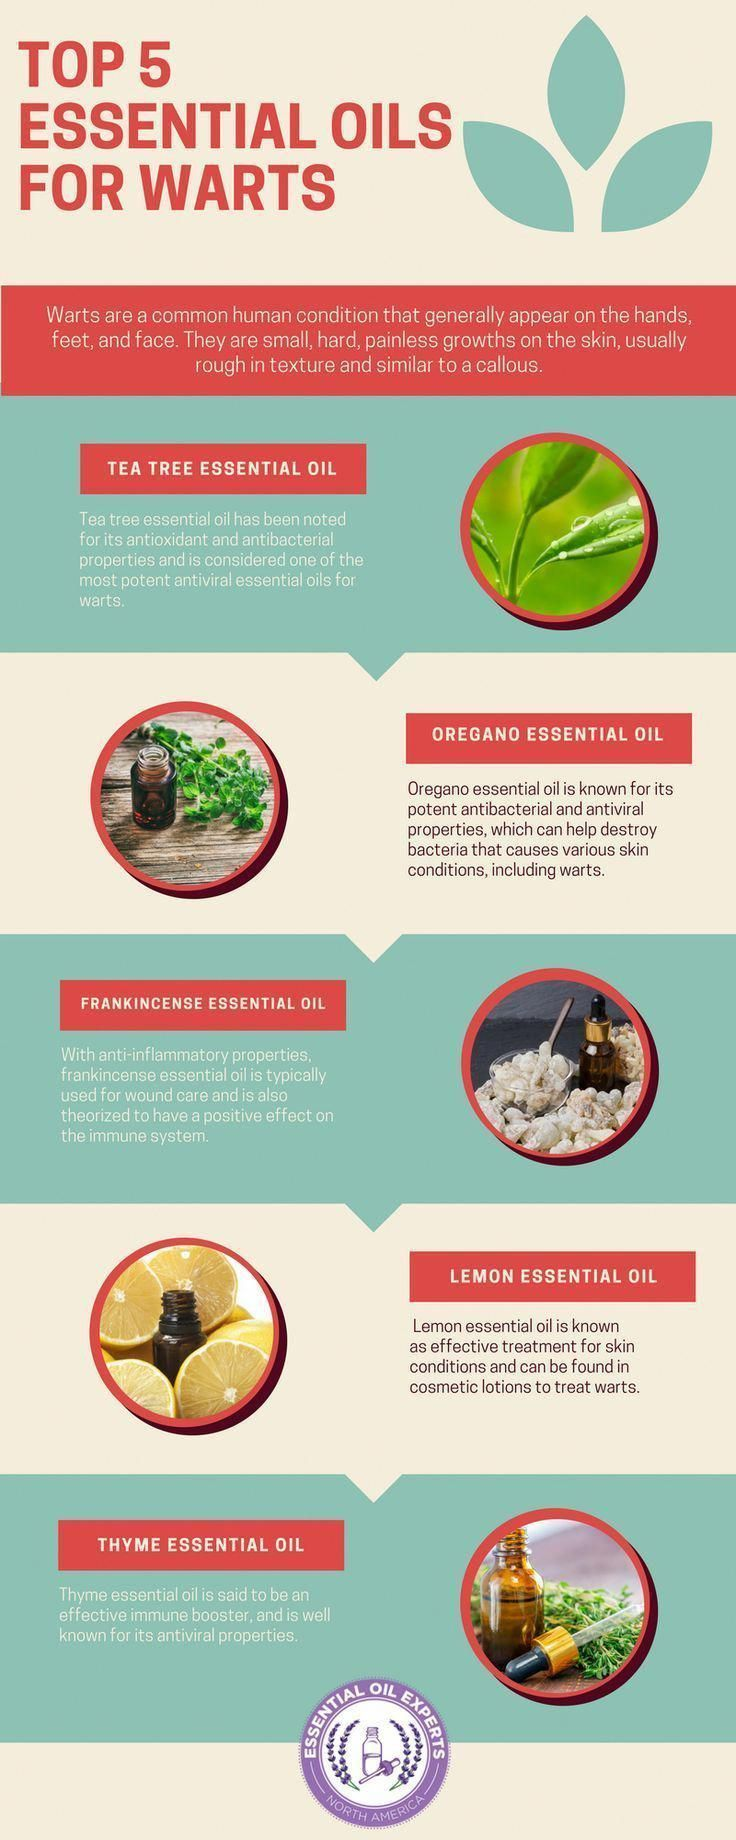 Top 5 Essential Oils for Warts - How to Get Rid of Warts #Natural#Wellness#HealthyLiving#EssentialOils#Holistic#NaturalRemedies#HealthAndWellness#NaturalHealth#HolisticHealth#AllNatural#CleanLiving#HolisticMedicine #essentialoils   #essentialoilsforbeginn #HomeRemediesToCureCold